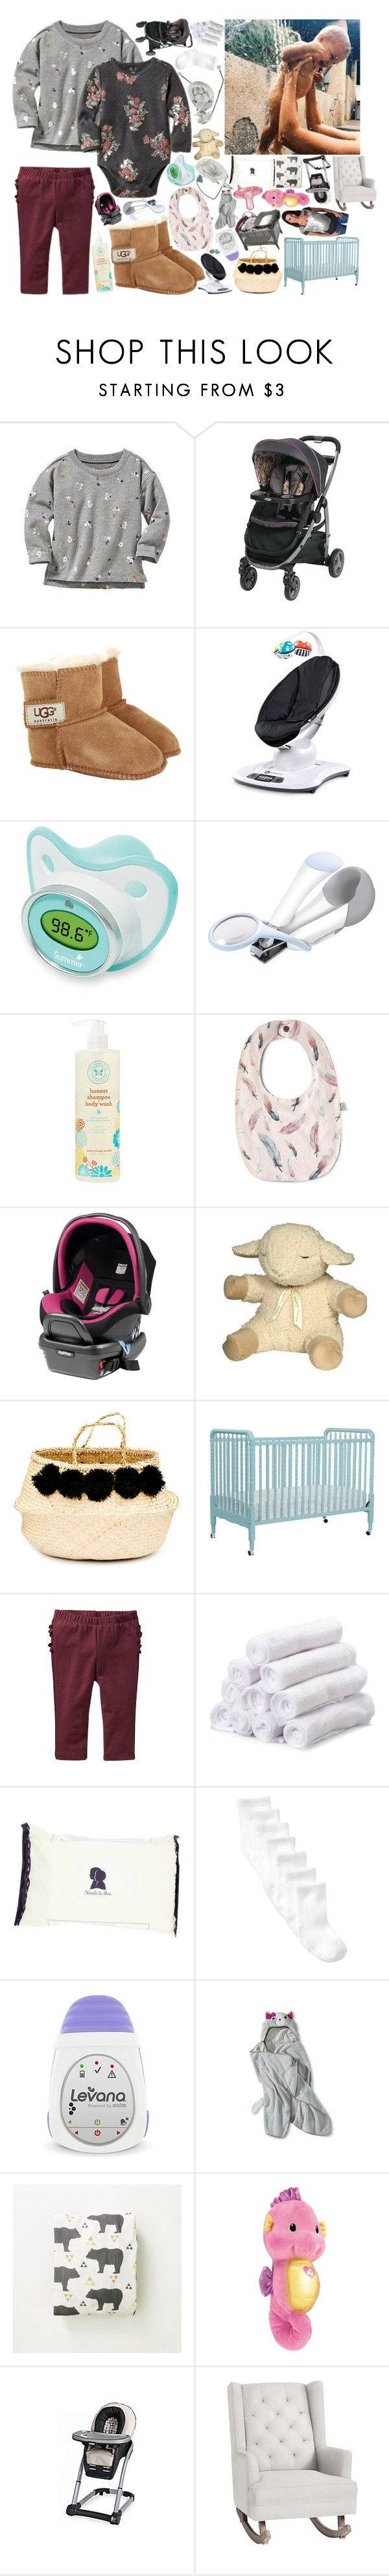 """""""My Baby's Gonna Be Adorable"""" by sbhackney ❤ liked on Polyvore featuring Old Navy, UGG Australia, 4moms, Summer Infant, The First Years, The Honest Company, Fisher Price, Cloud B, Eliza Gran Studio and Noodle & Boo"""